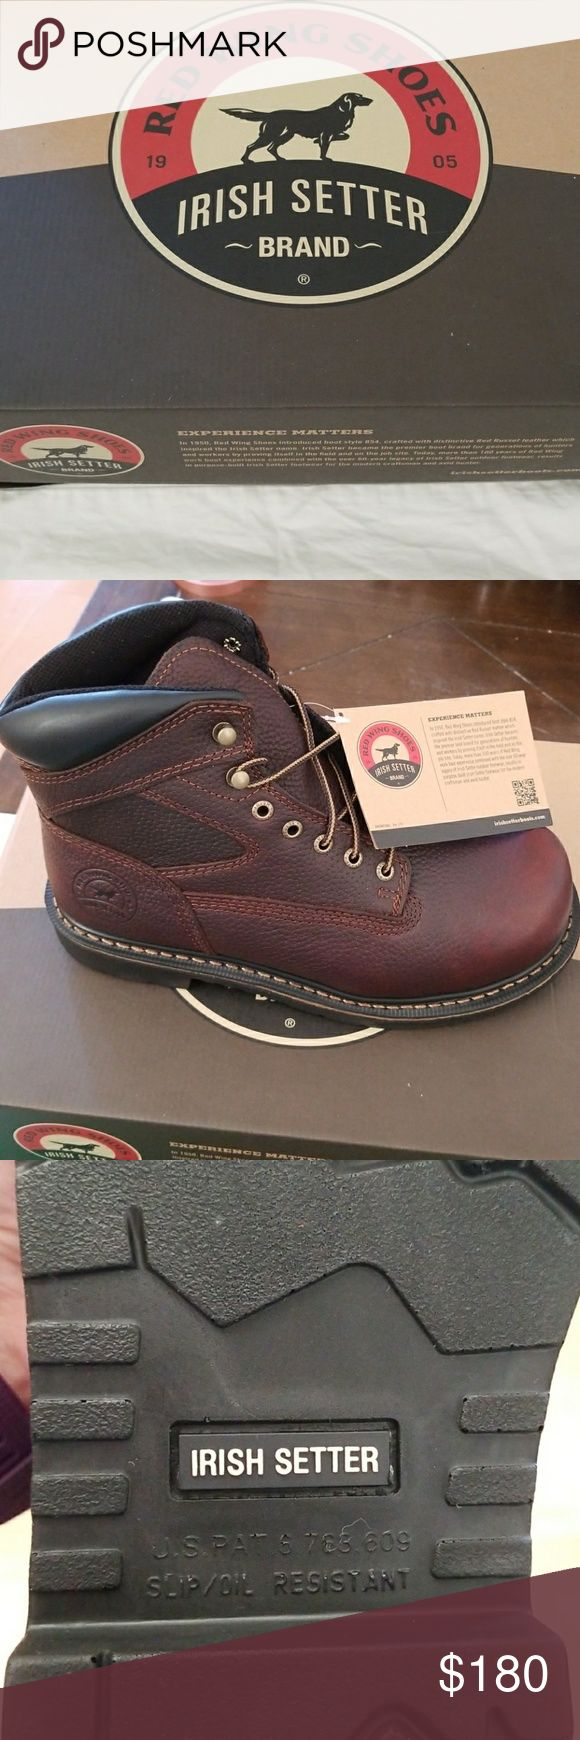 "Men's size 8.5 Farmington safety toe 6"" work boots Red wing shoes Irish setter work brand safety steel toe with spill/oil resistant soles. Red Wing Shoes Shoes Boots"